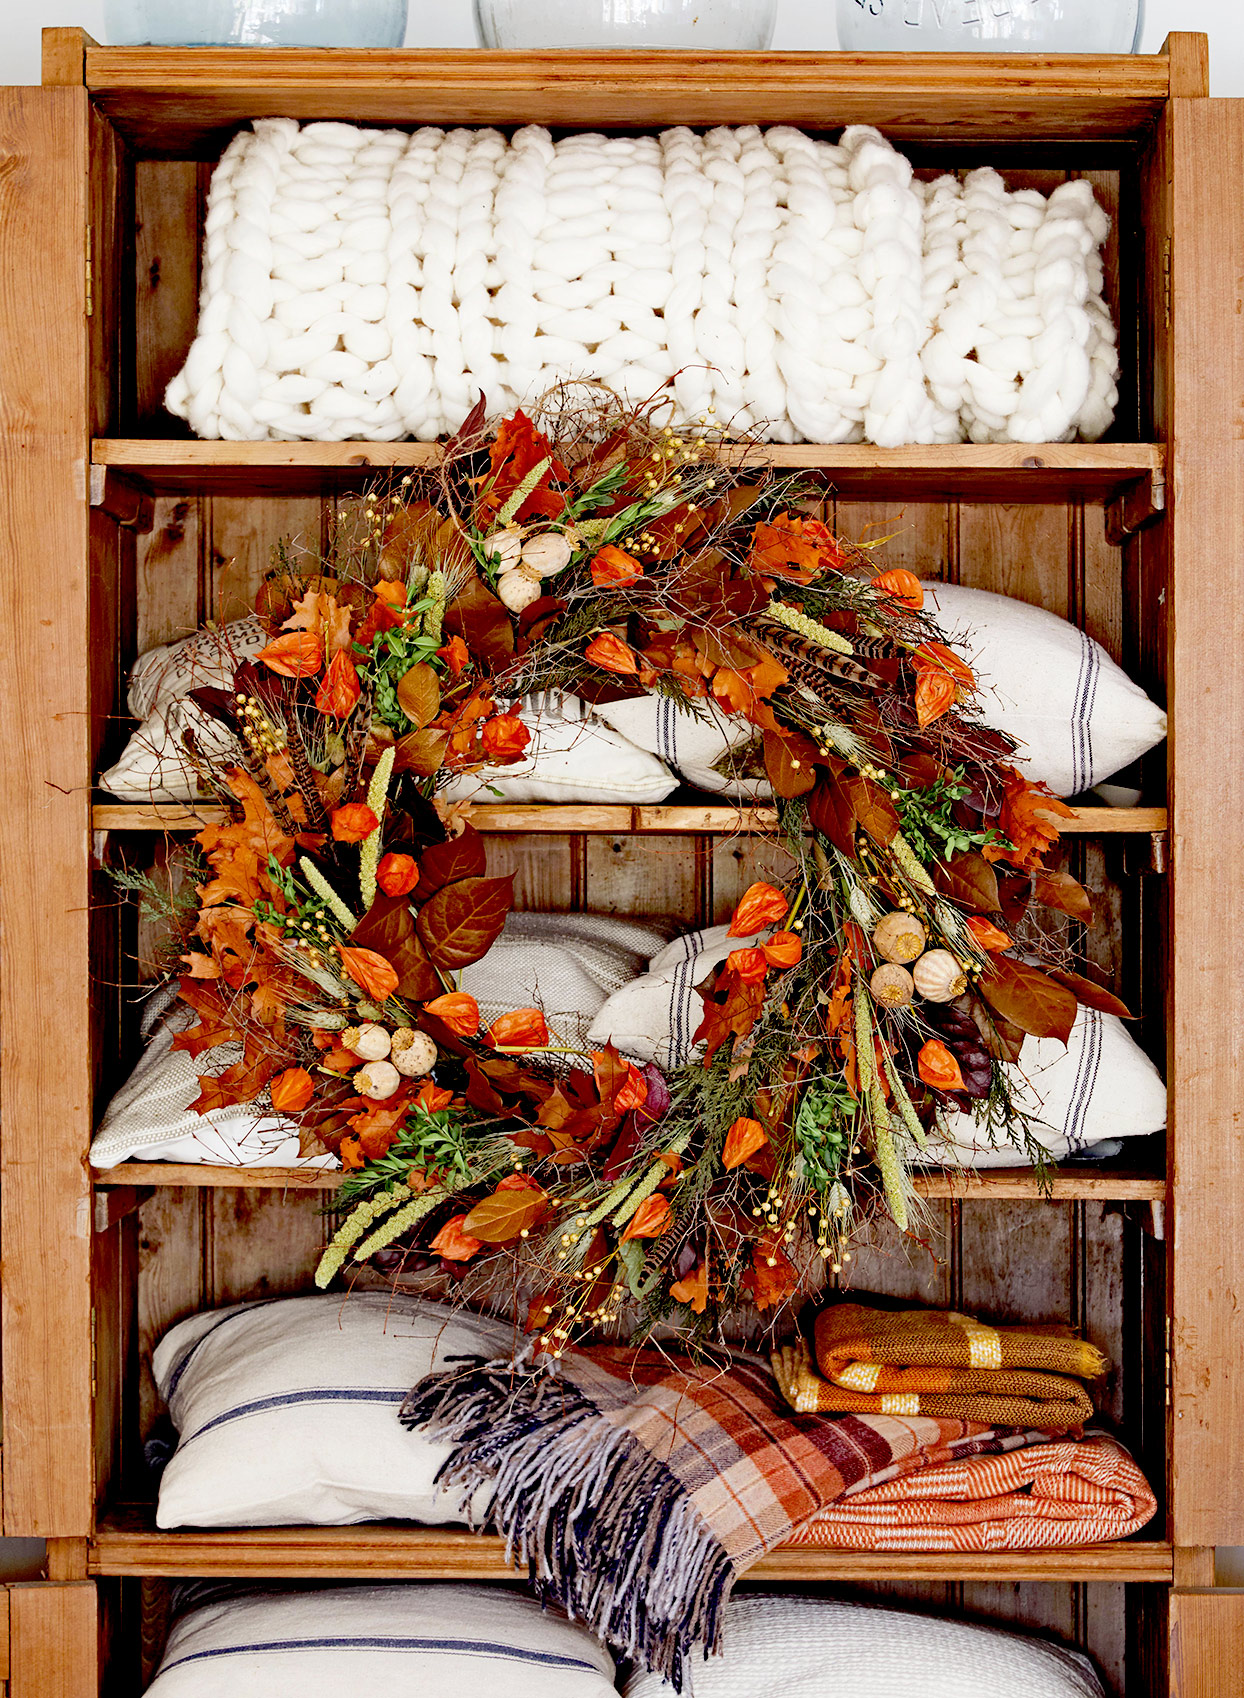 Wooden shelving with pillows, wreath